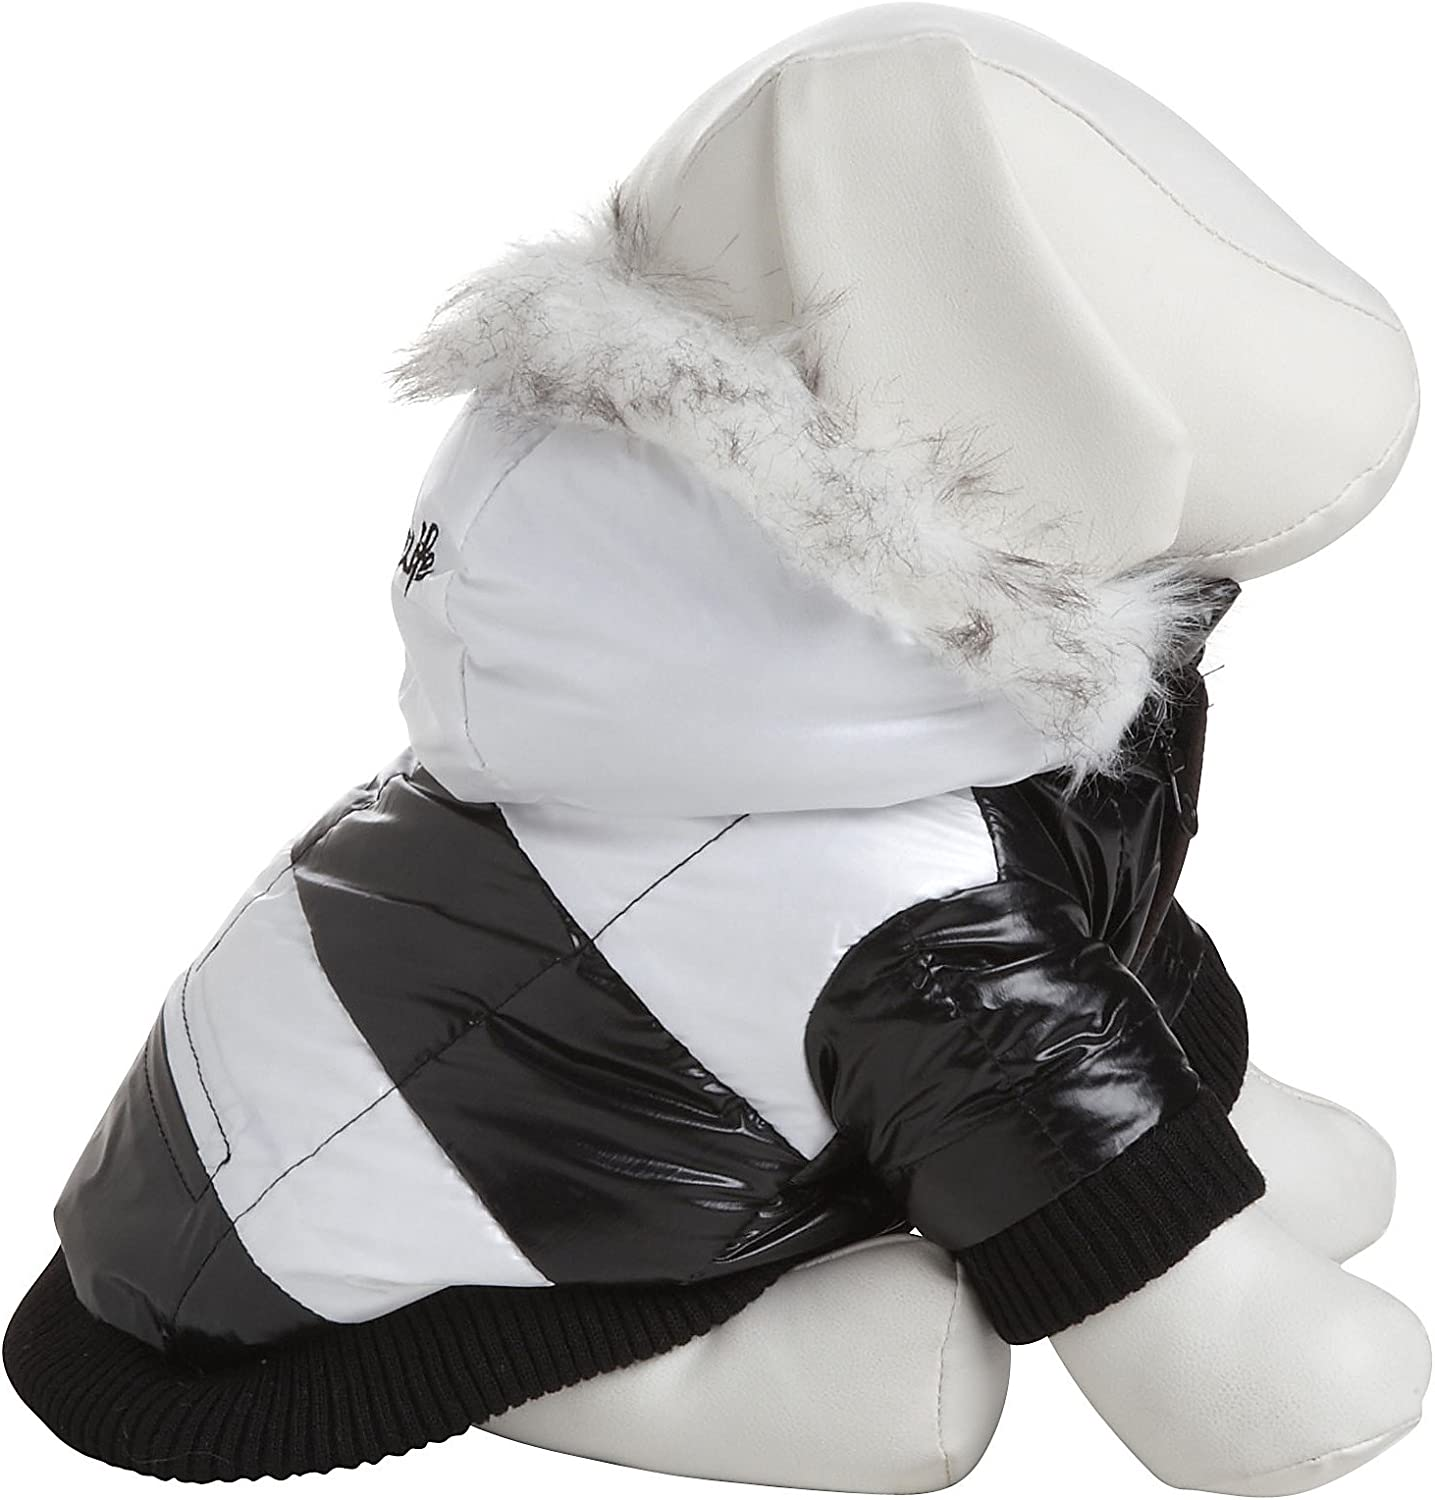 PET LIFE Fashion Striped UltraPlush Pet Dog Coat Jacket Parka w  3M Insulation and Removable Hood, XSmall, Black & White